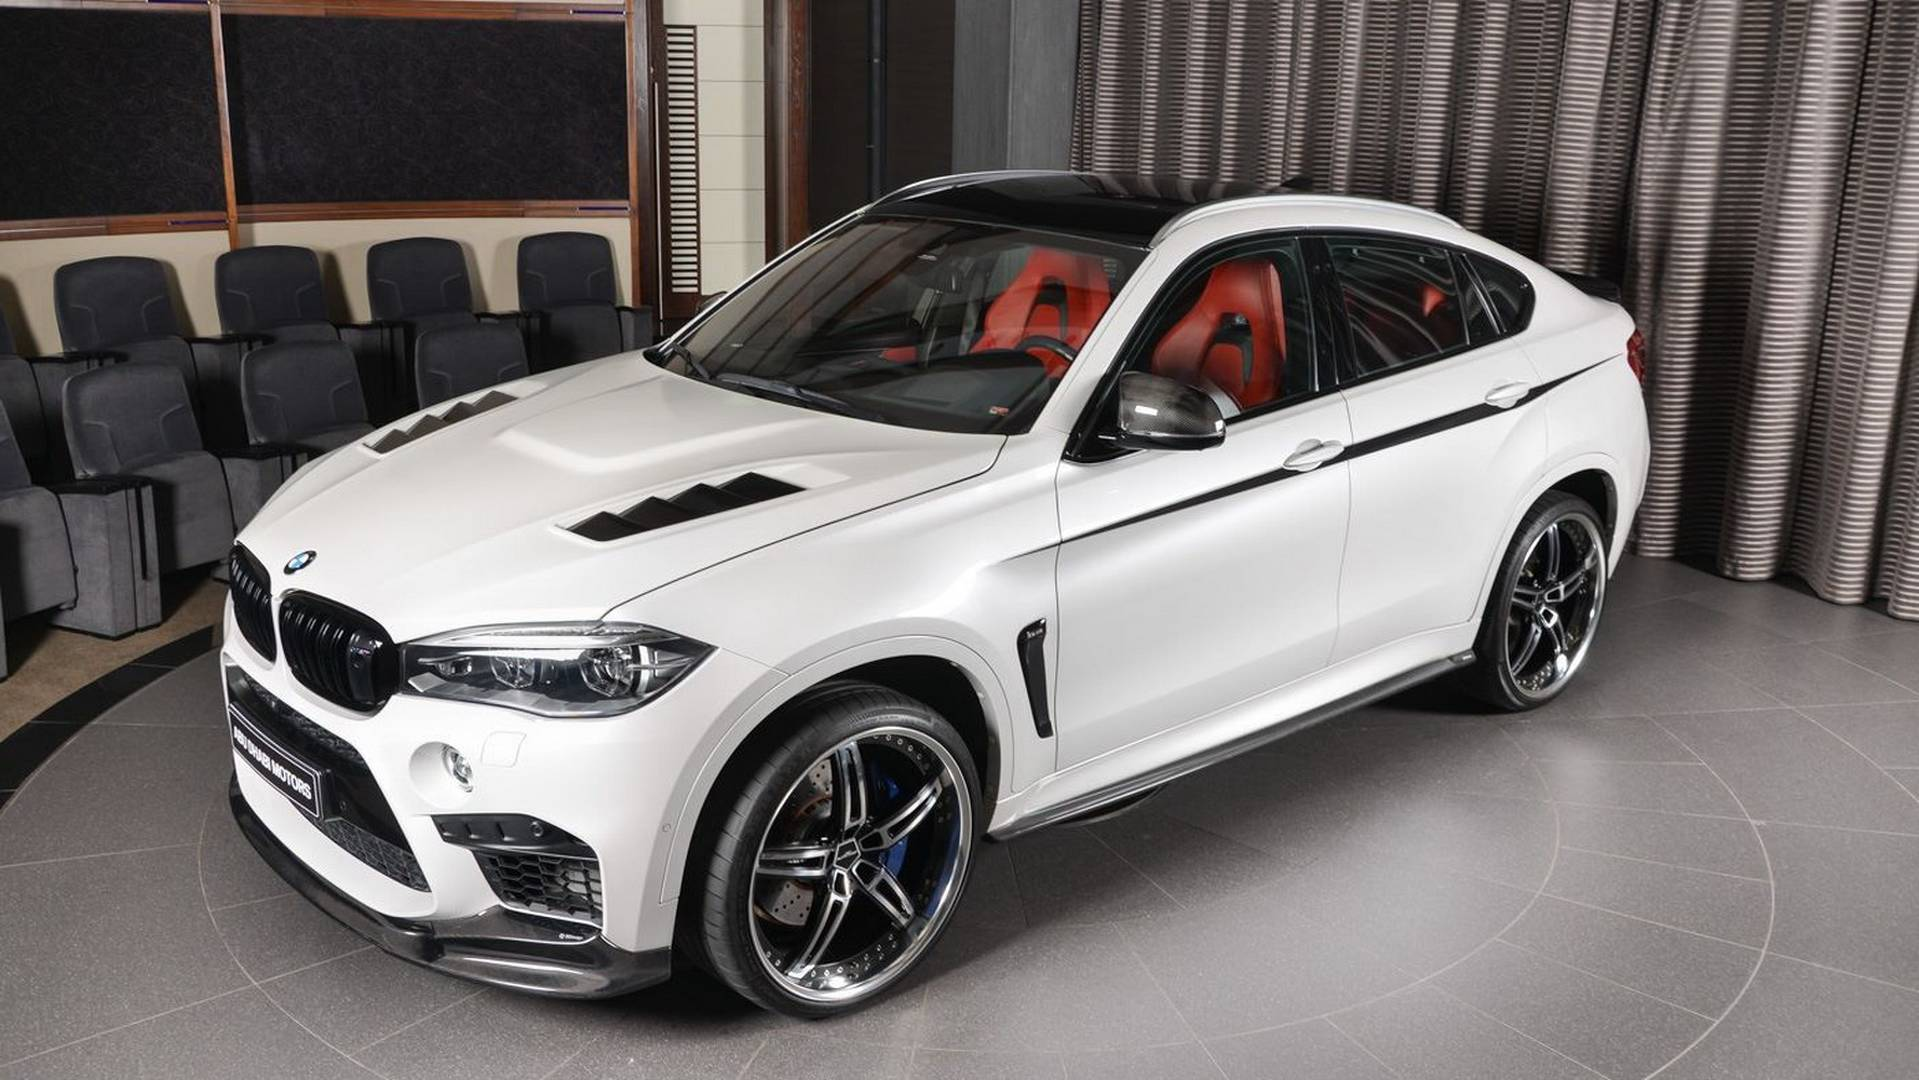 bmw x6 m with 23 inch wheels makes the urus look restrained Engine